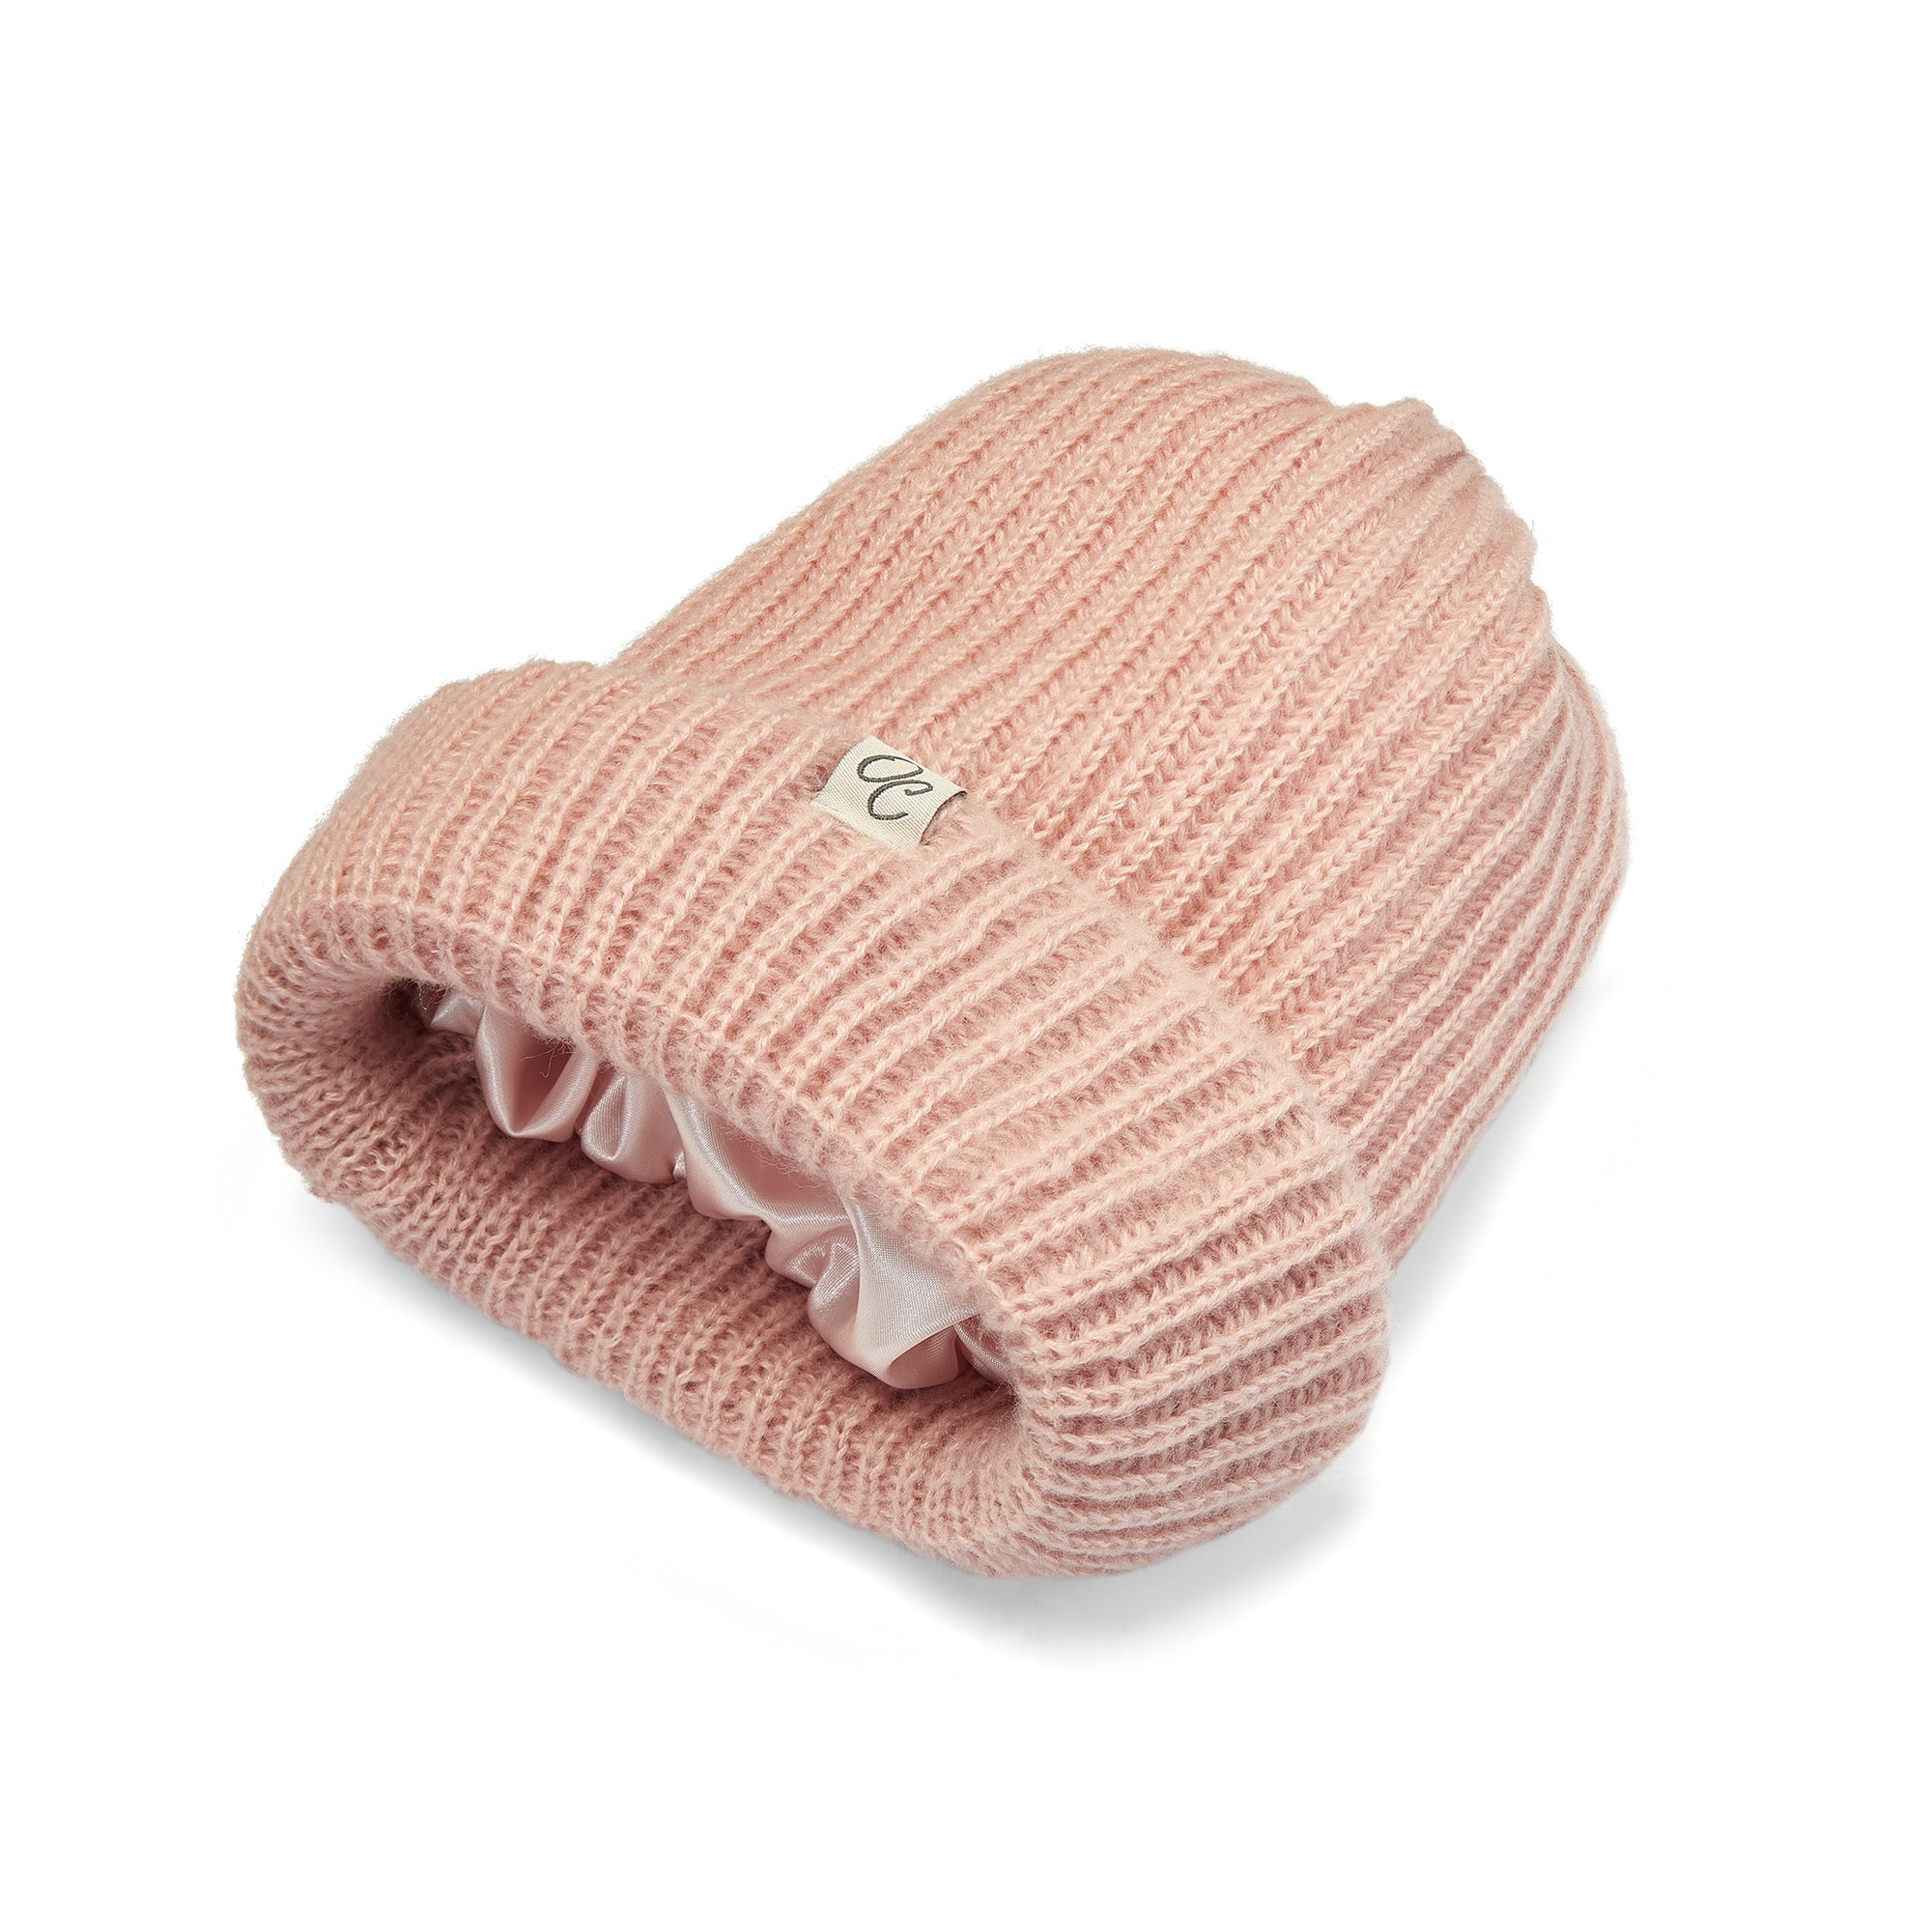 Only Curls Pink Satin Lined Knitted Beanie Hat